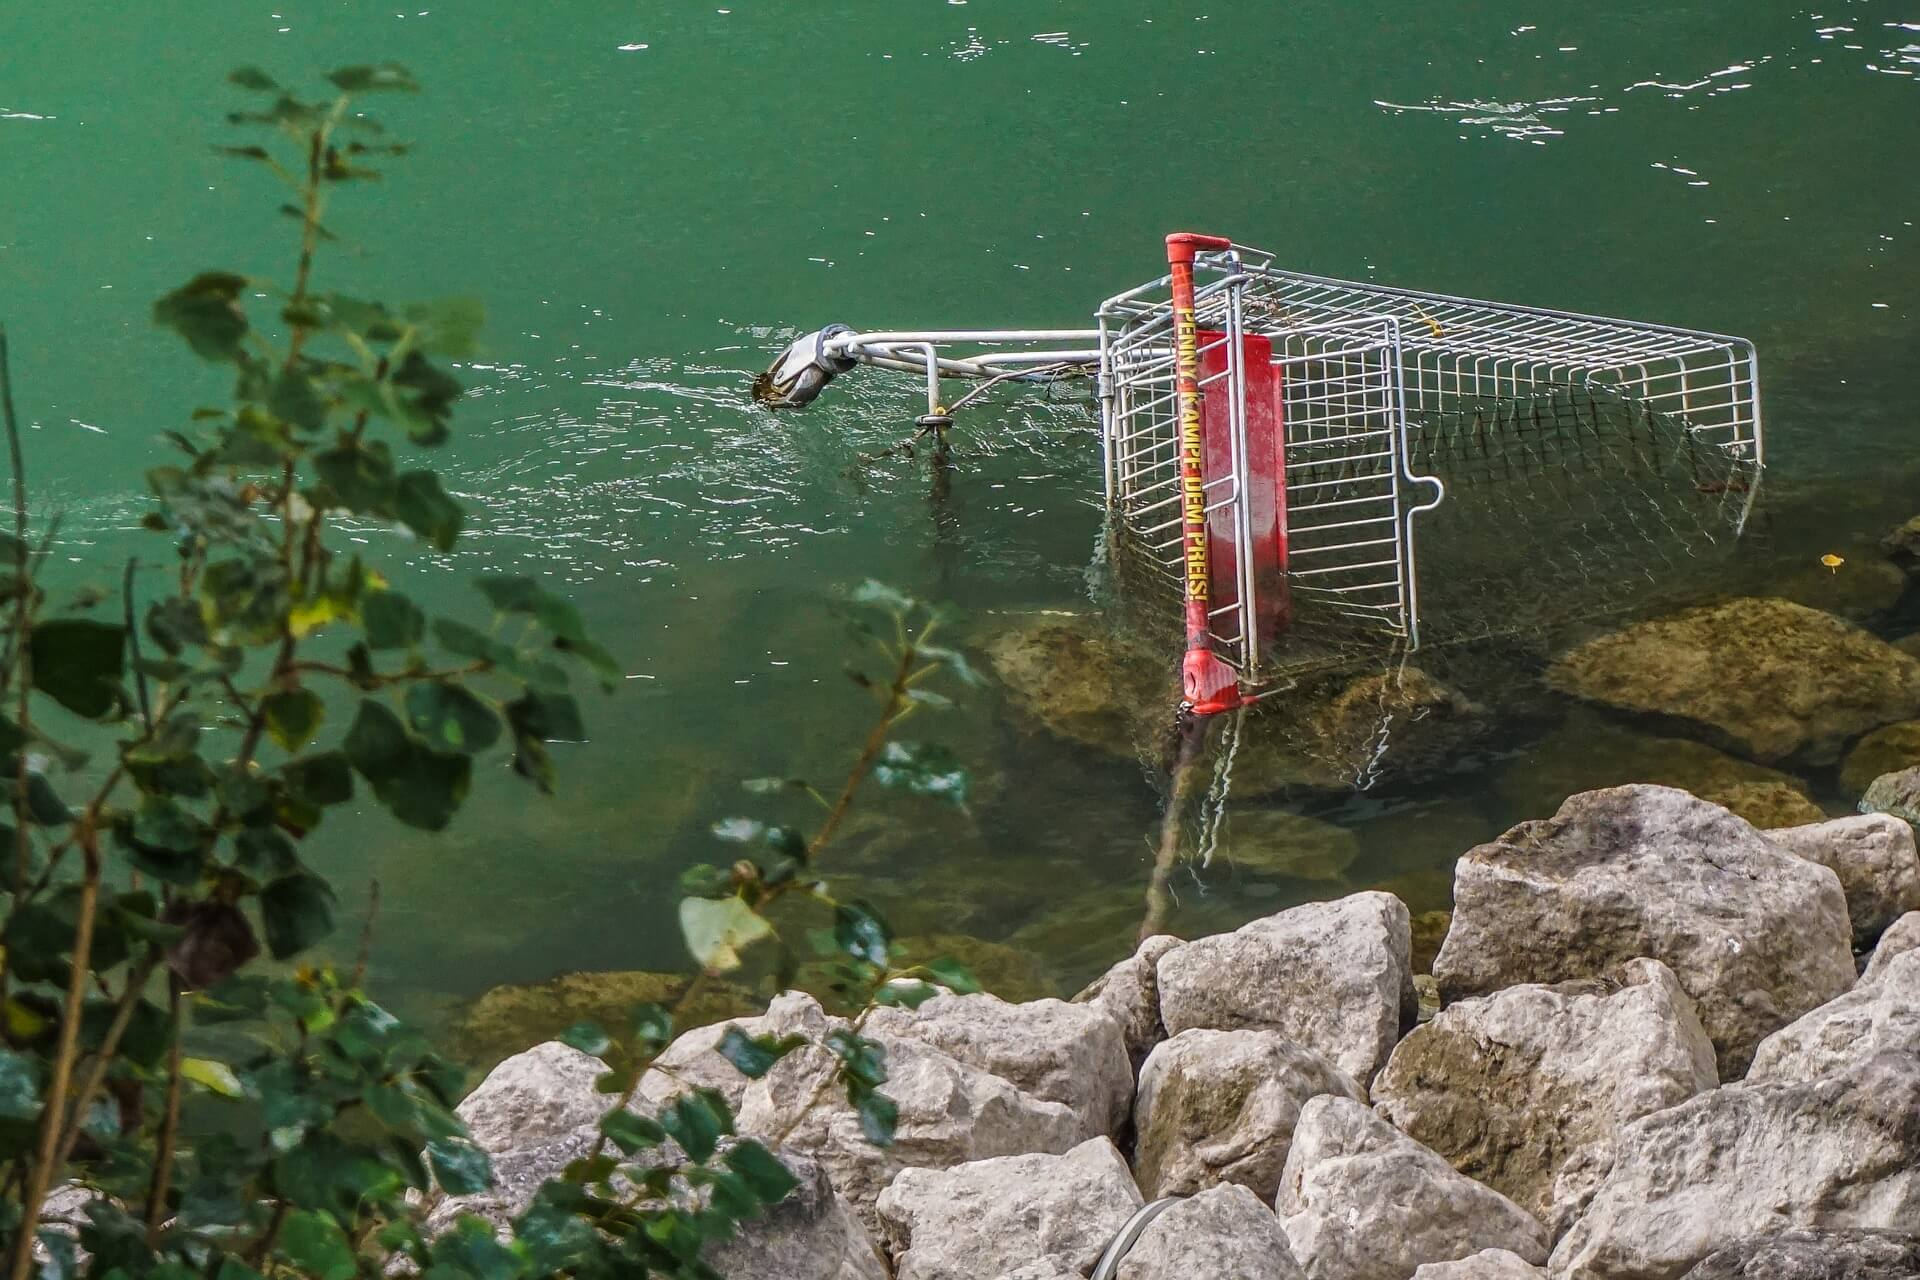 shopping basket lying half submerged in a littered waterway